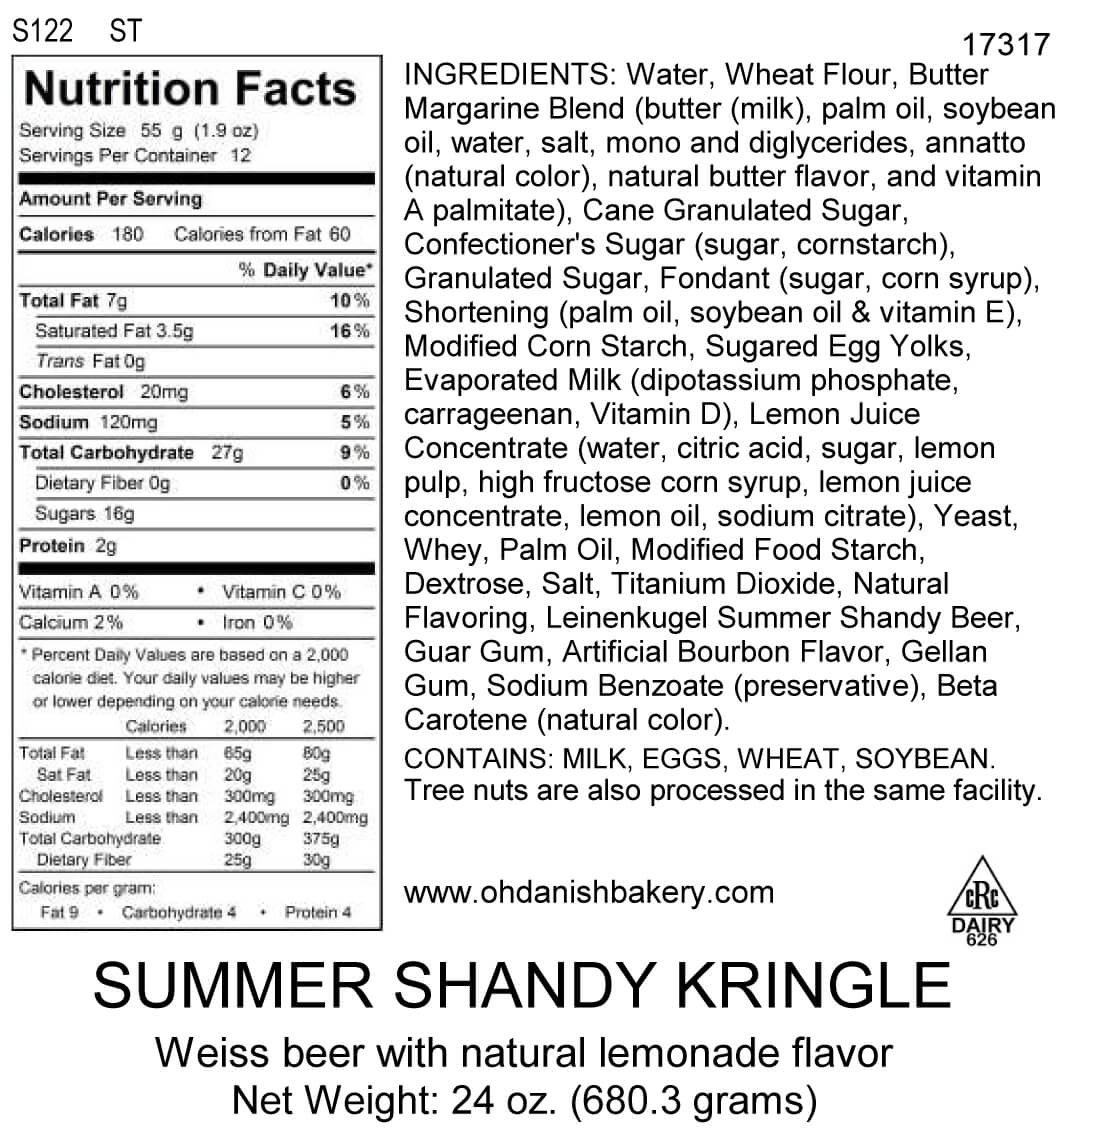 Nutritional Label for Summer Shandy Kringle